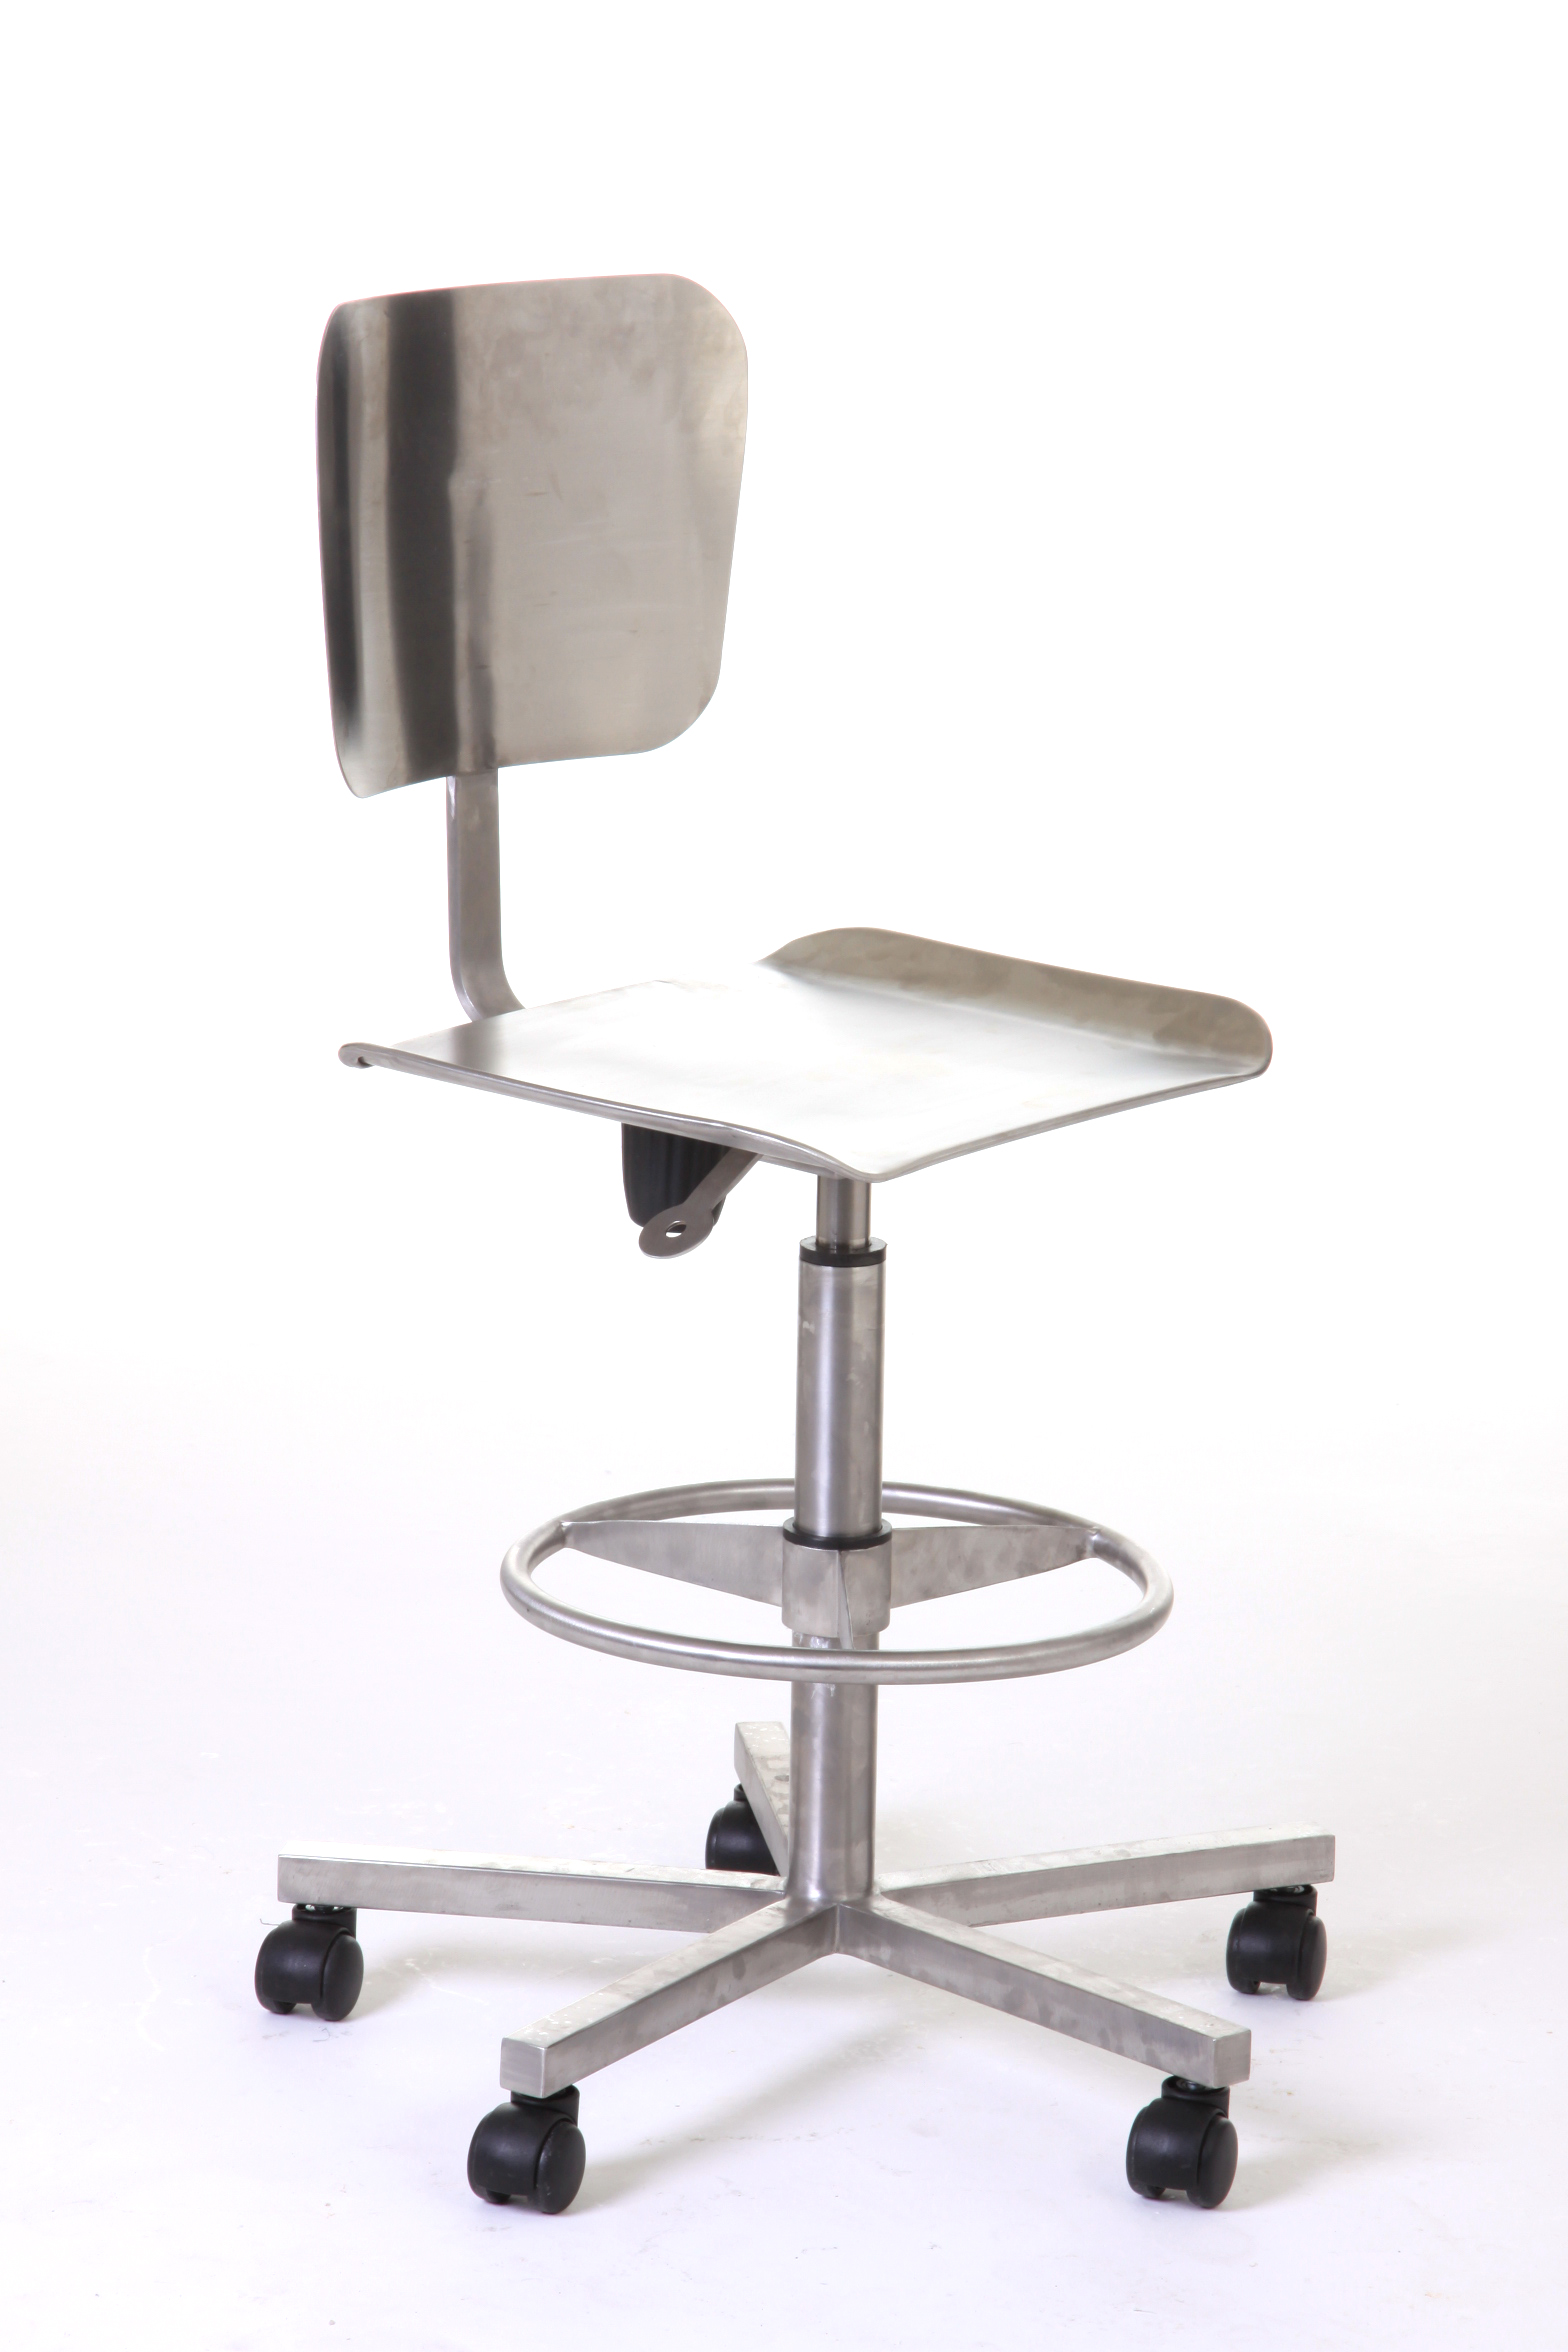 FileStainless Steel Laboratory Pneumatic Chair with wheels.jpg  sc 1 st  Wikimedia Commons & File:Stainless Steel Laboratory Pneumatic Chair with wheels.jpg ... islam-shia.org